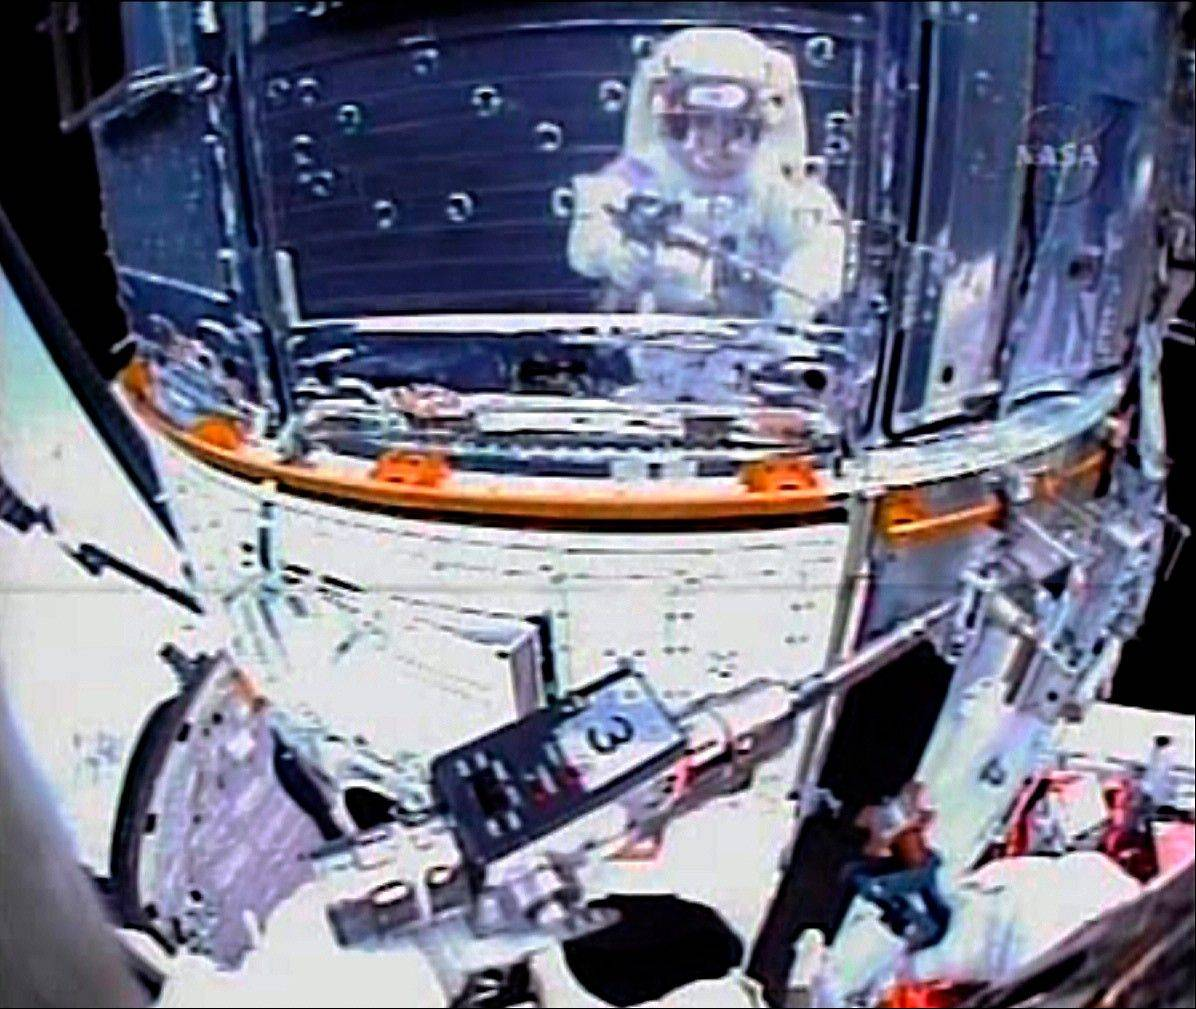 In this Monday, May 18, 2009 image made from video provided by NASA, astronaut John Grunsfeld is reflected on the surface of the Hubble Space Telescope as he works to upgrade the orbiting observatory during a spacewalk on the fifth and final repair mission for the then 19-year-old telescope.